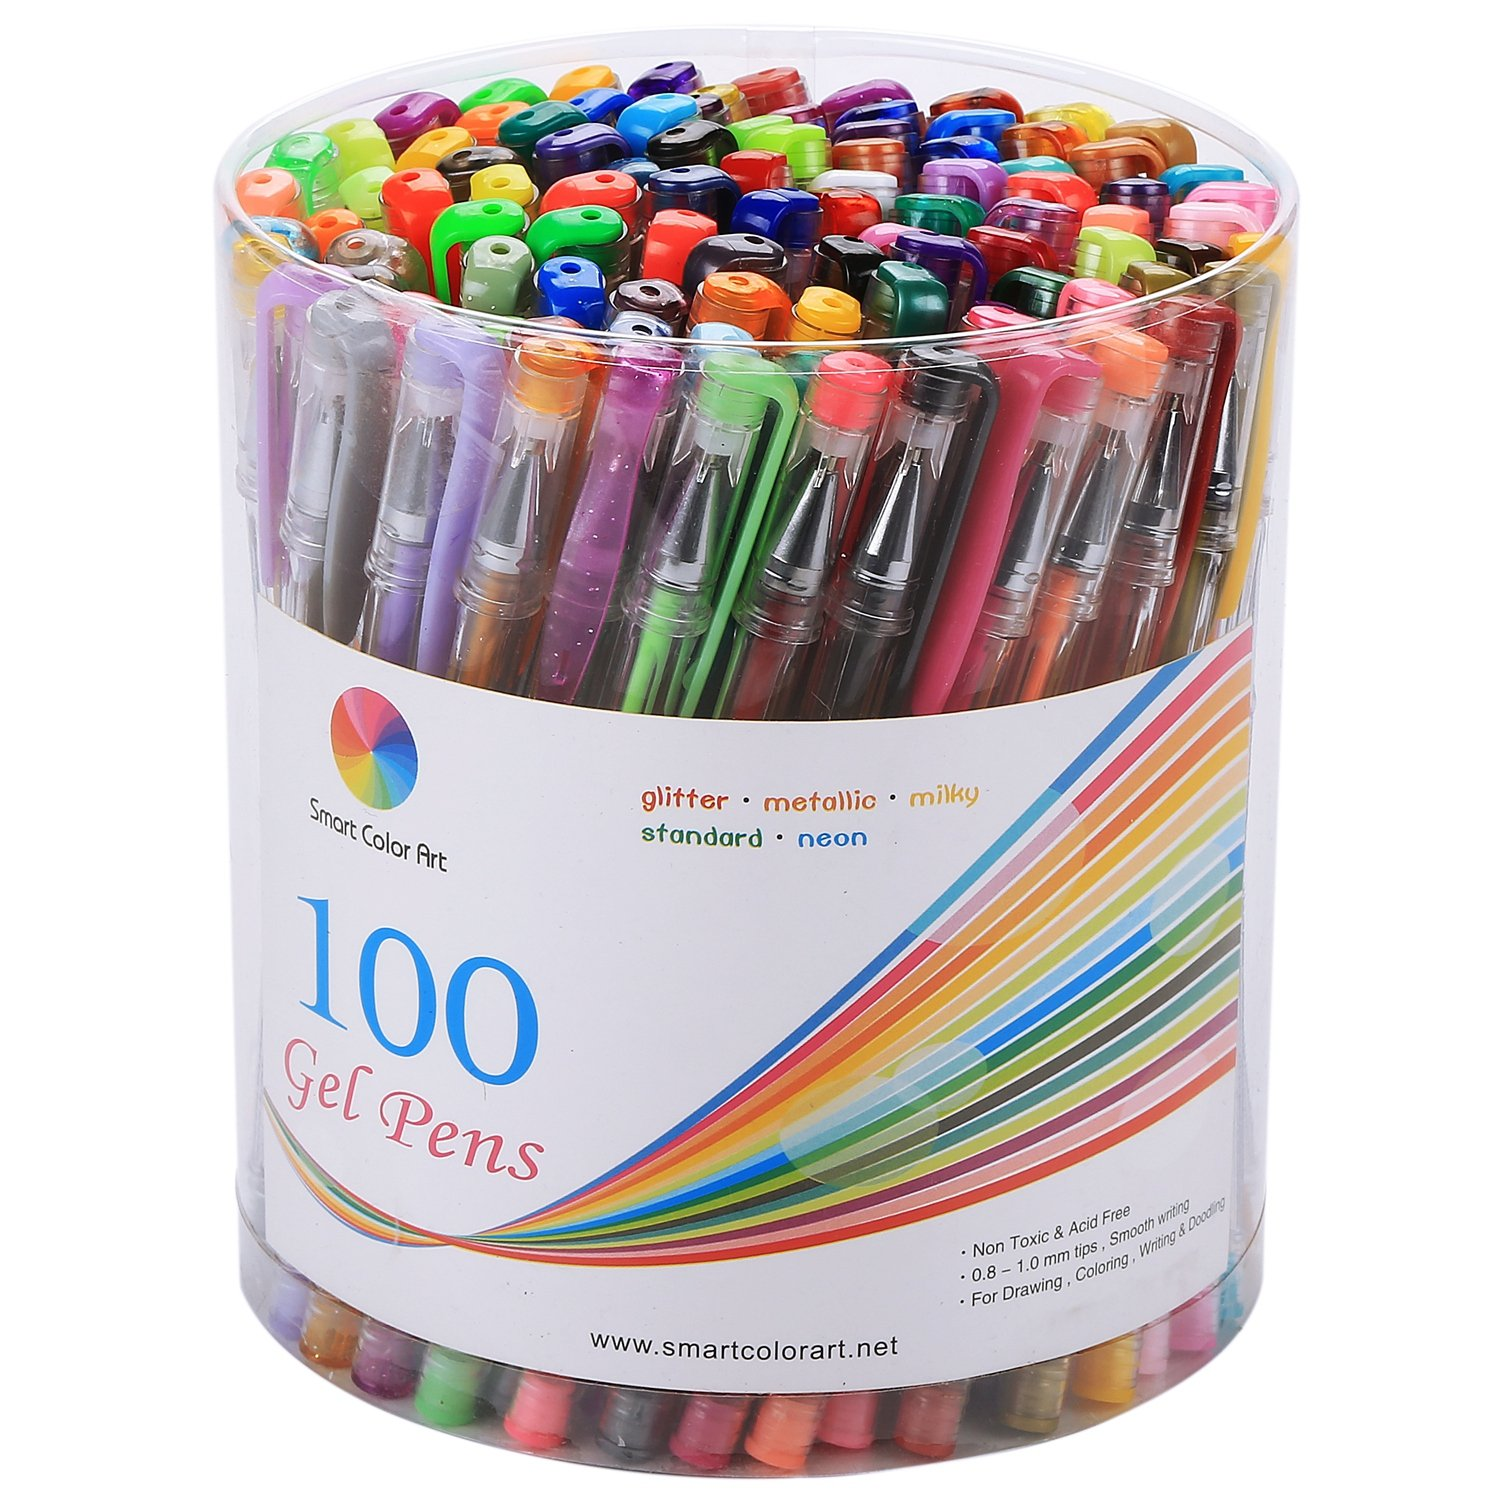 Smart Color Art 100 Colors Gel Pens Set for Adult Coloring Books Drawing Painting Writing by Smart Color Art (Image #1)